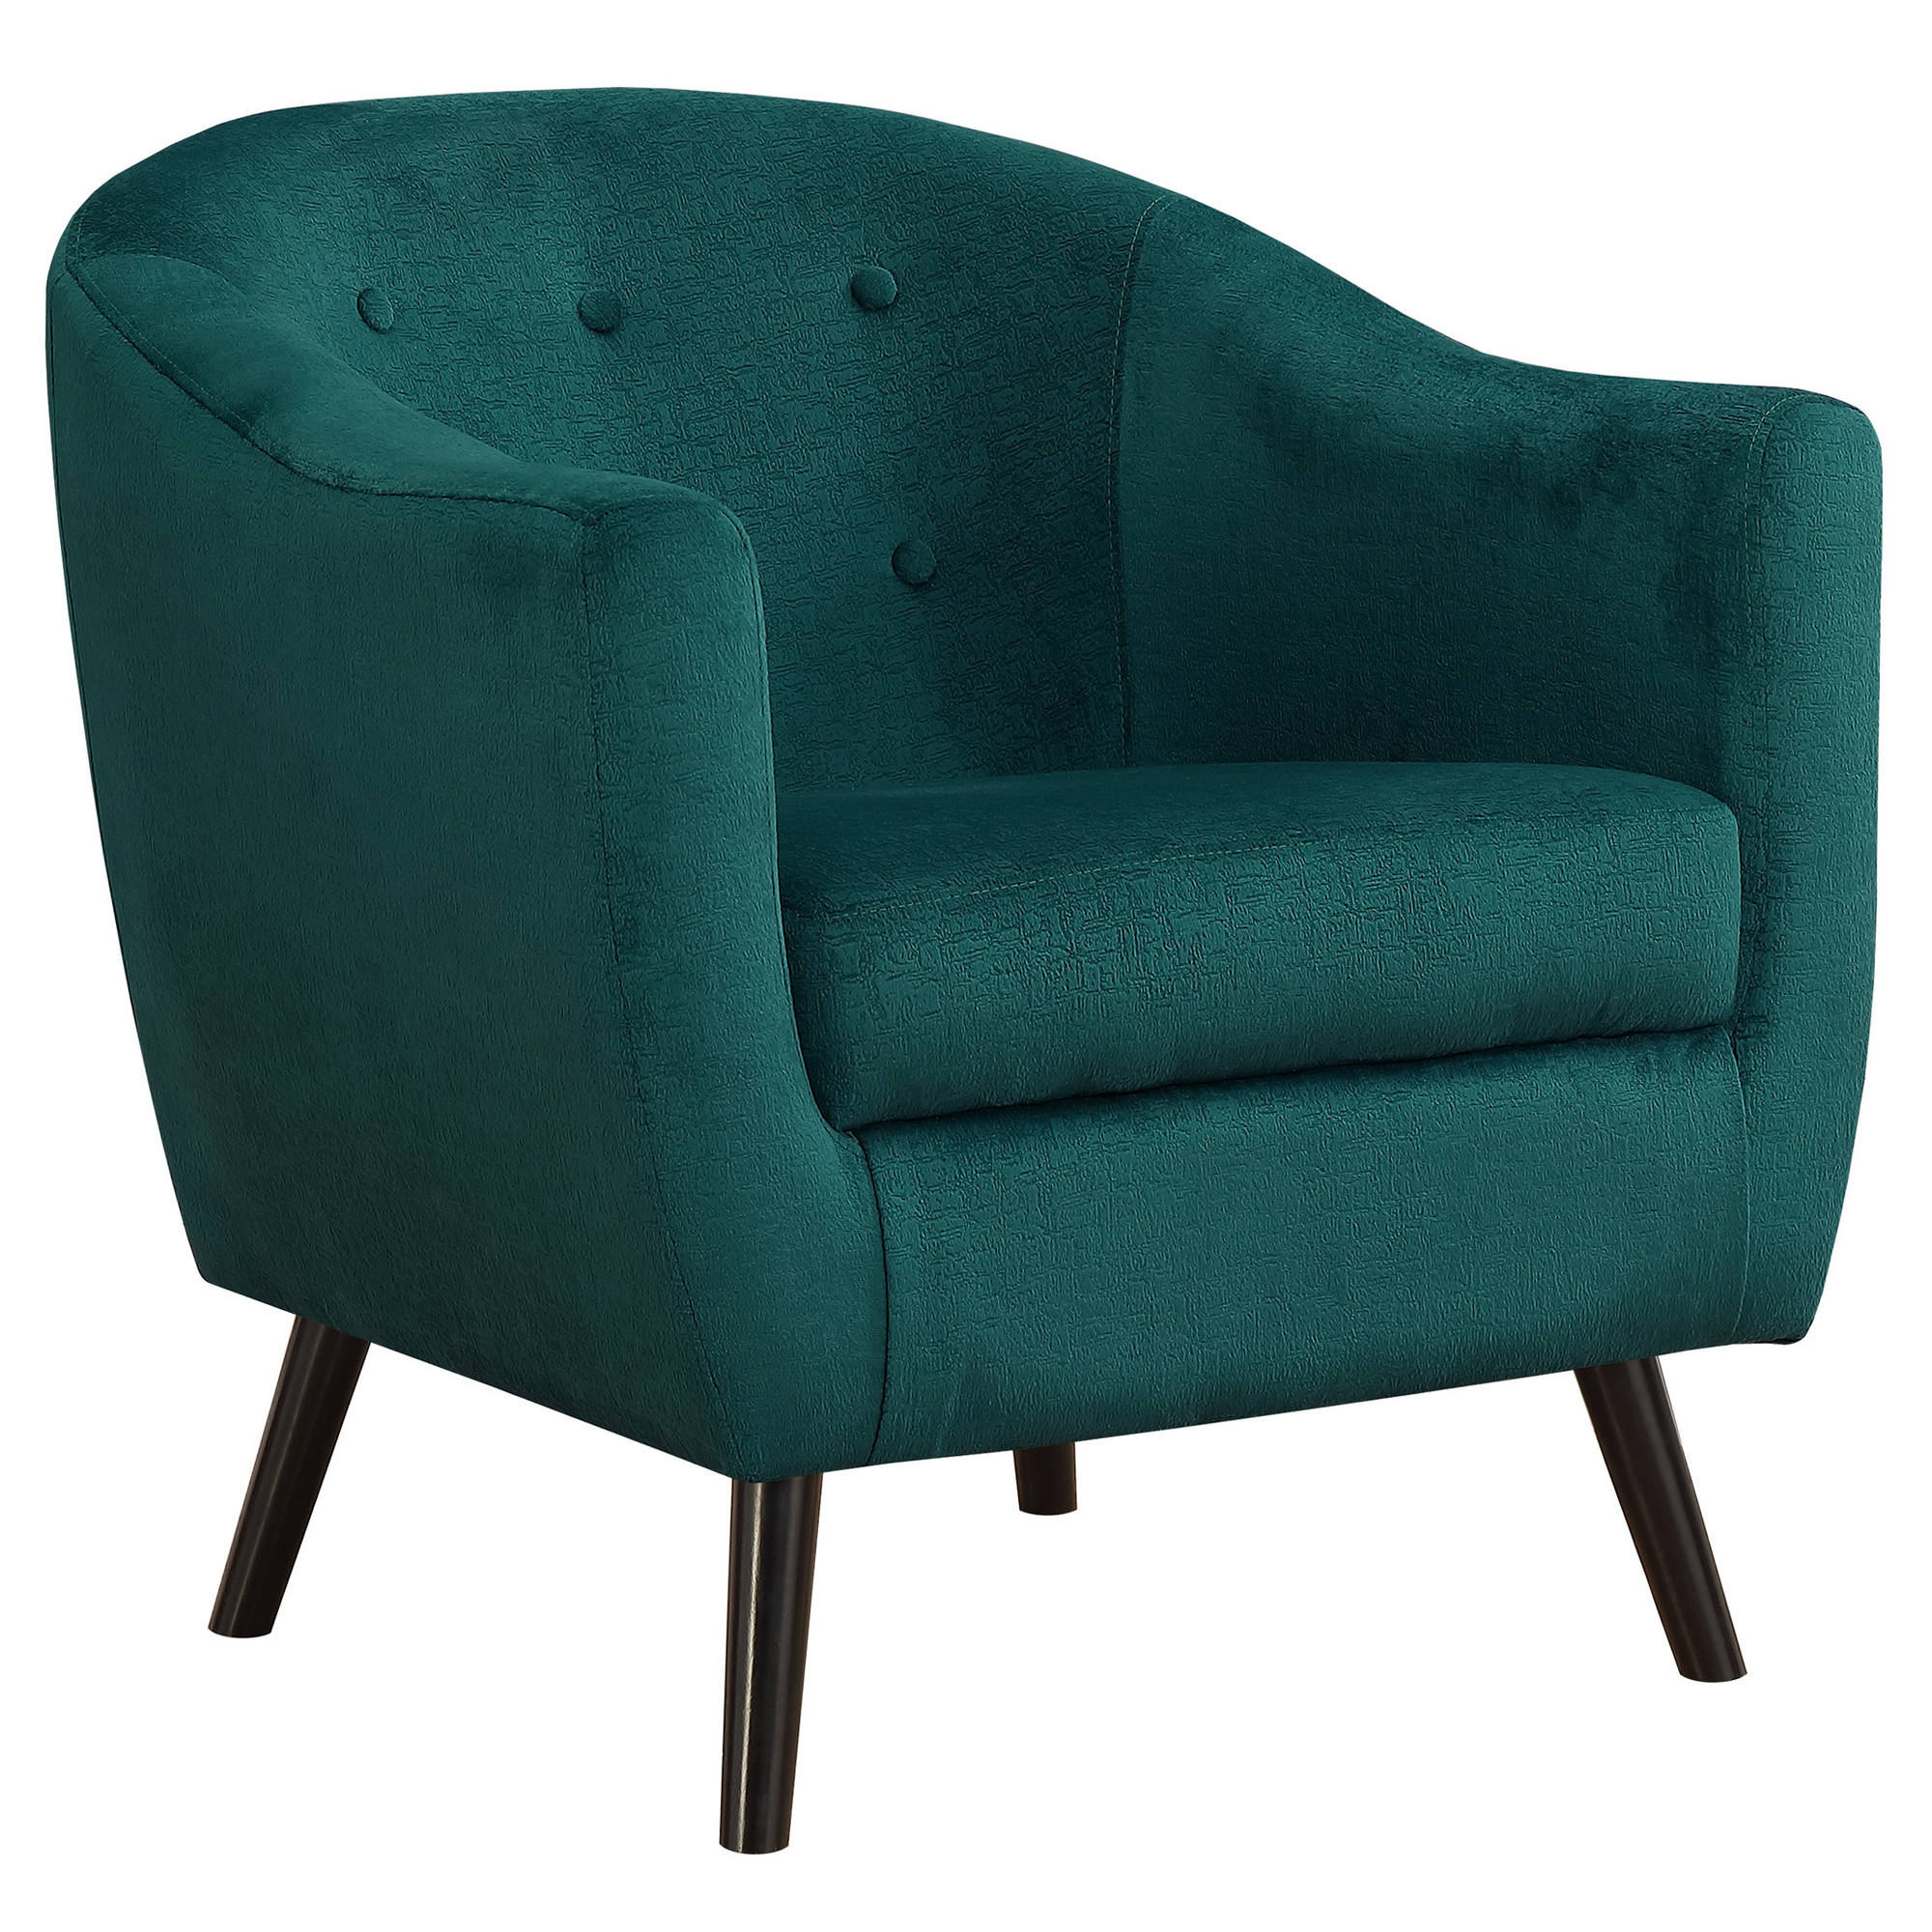 ACCENT CHAIR - EMERALD GREEN MOSAIC VELVET